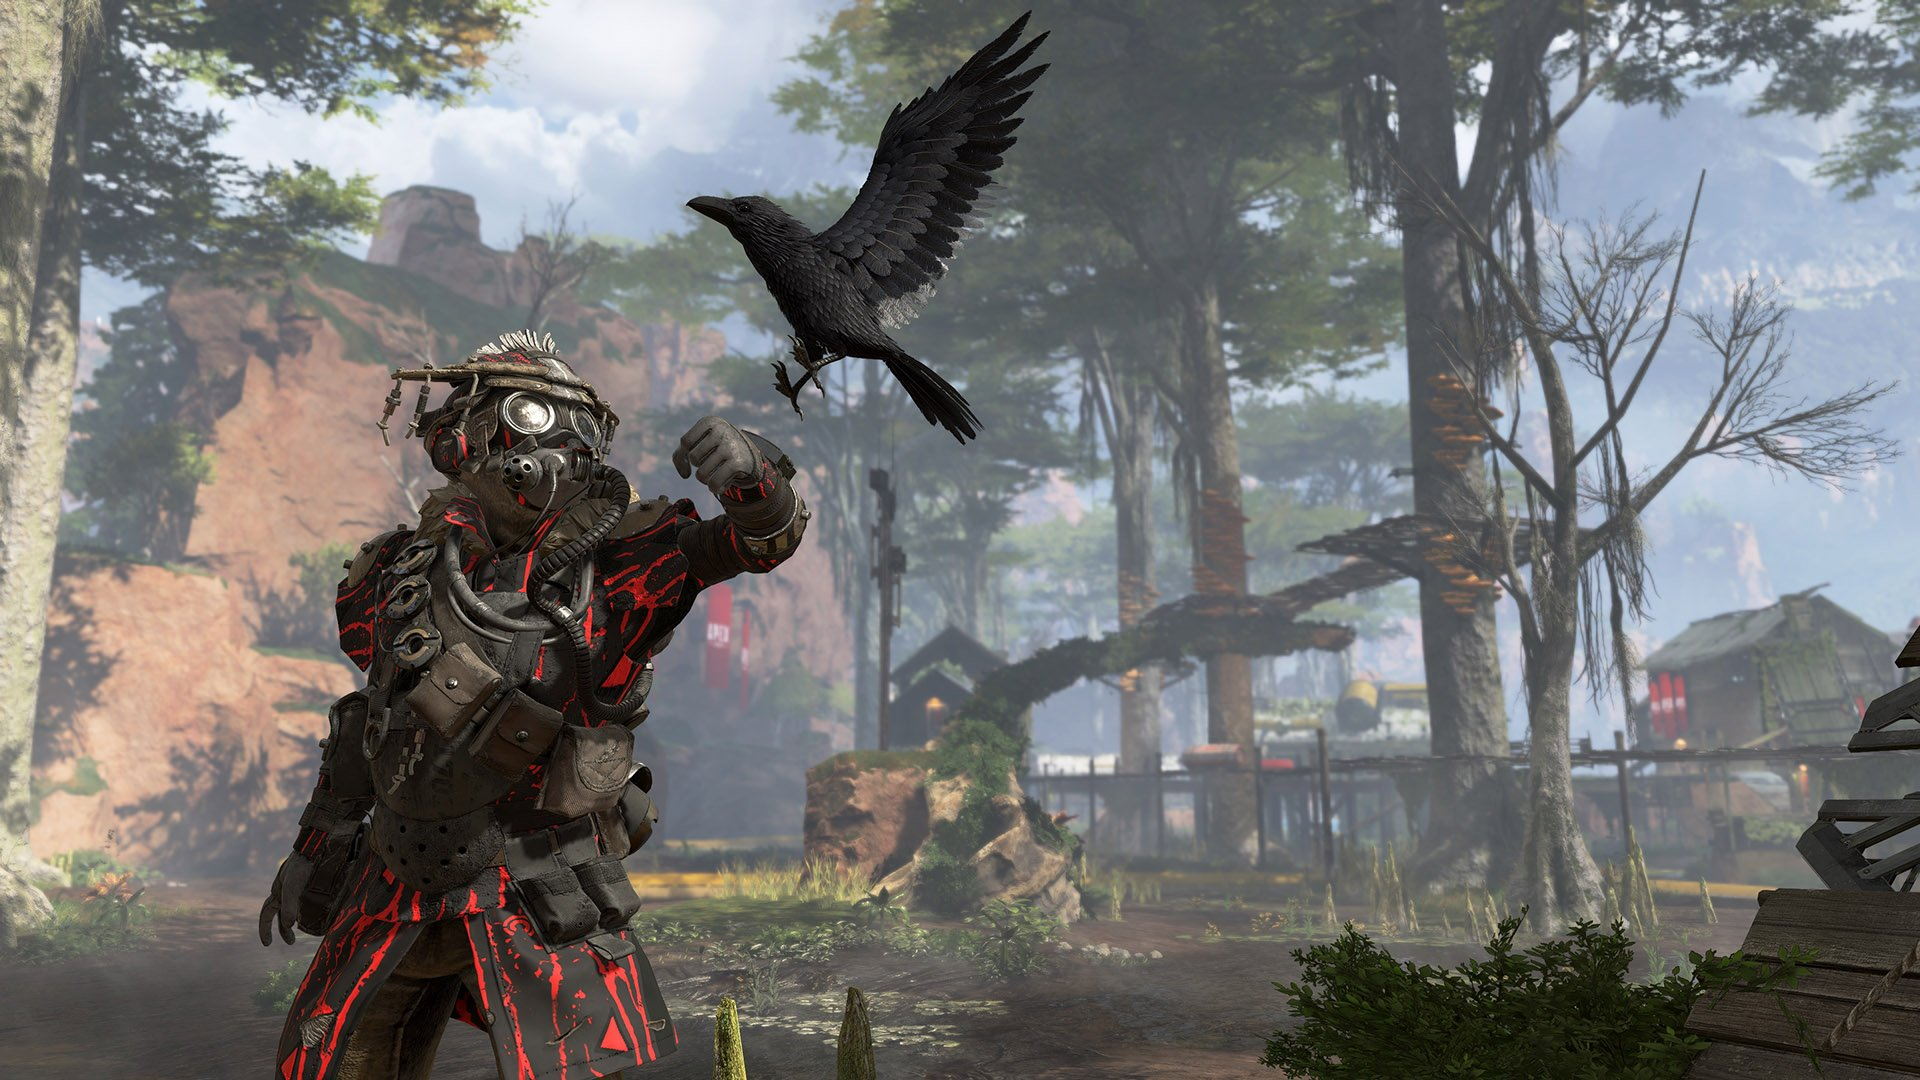 is Apex Legends free? - Players can unlock new skins for Legends like Bloodhound to make them stand out in the arena.